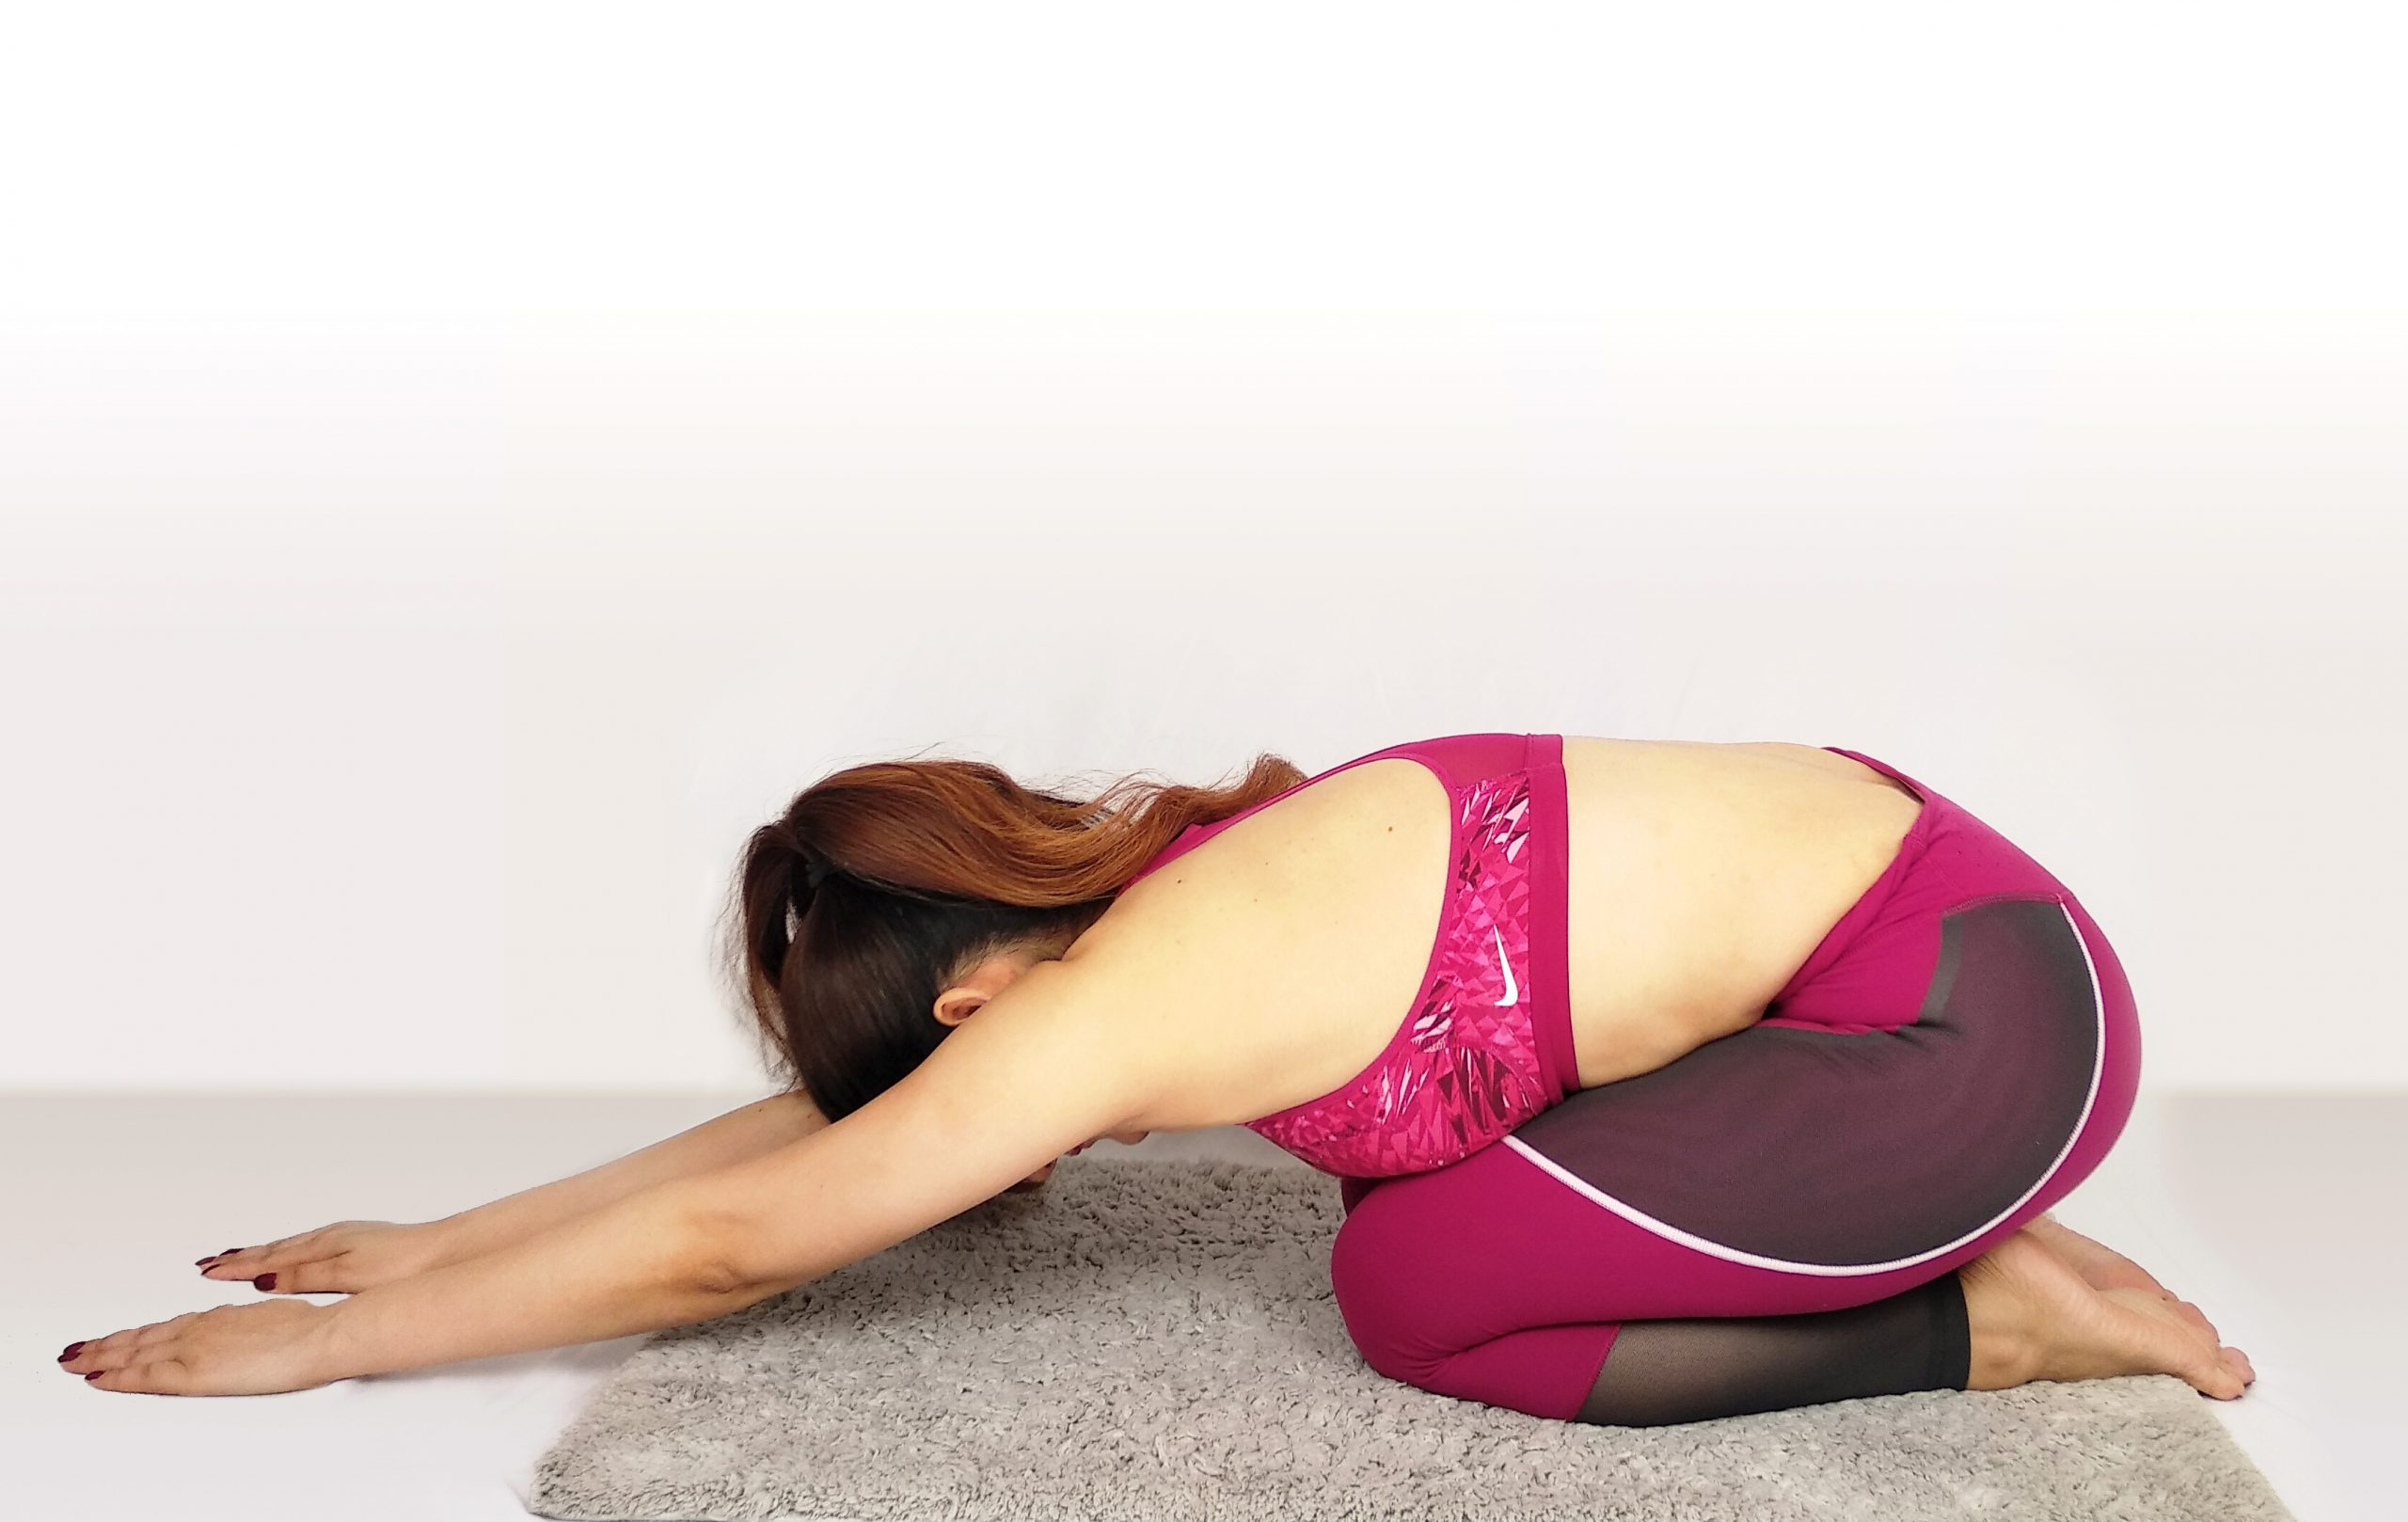 yoga routine simple basic poses balasana